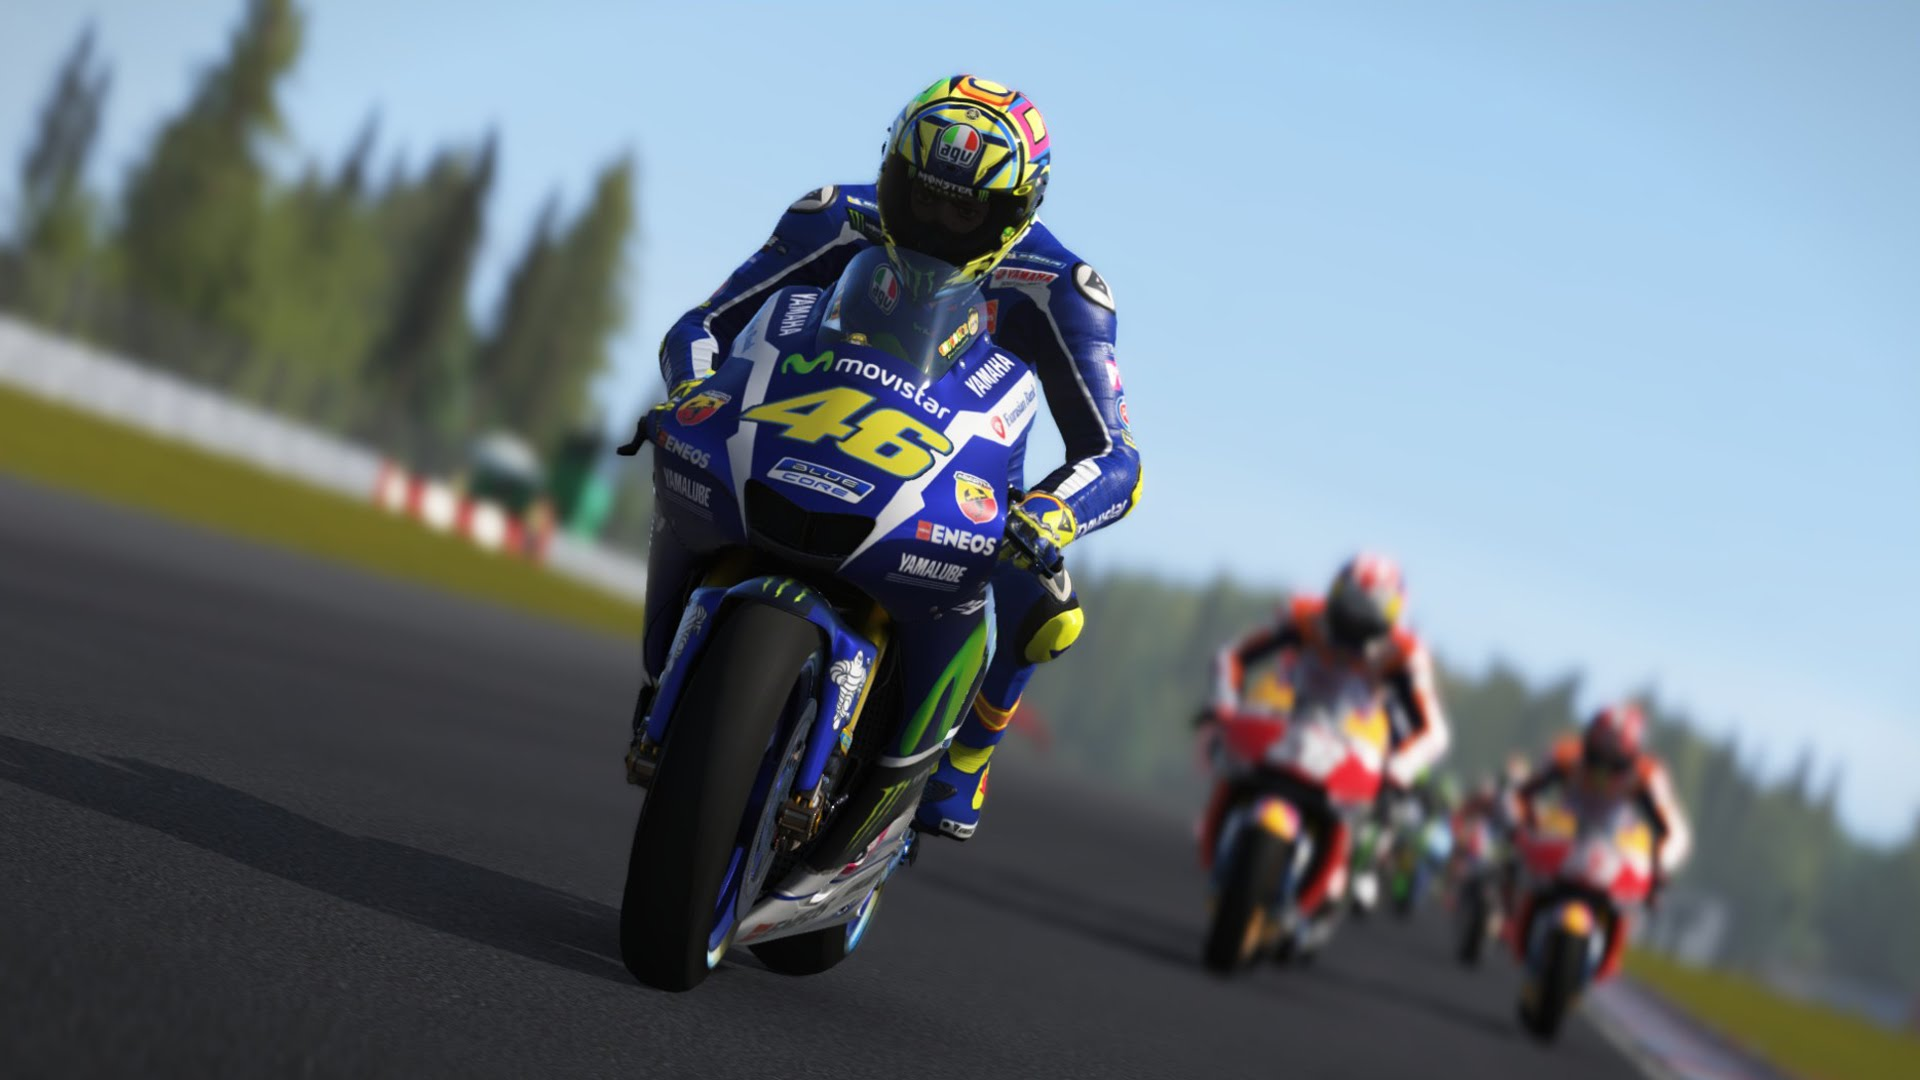 valentino rossi gets new motogp legendary bikes dlc thexboxhub. Black Bedroom Furniture Sets. Home Design Ideas